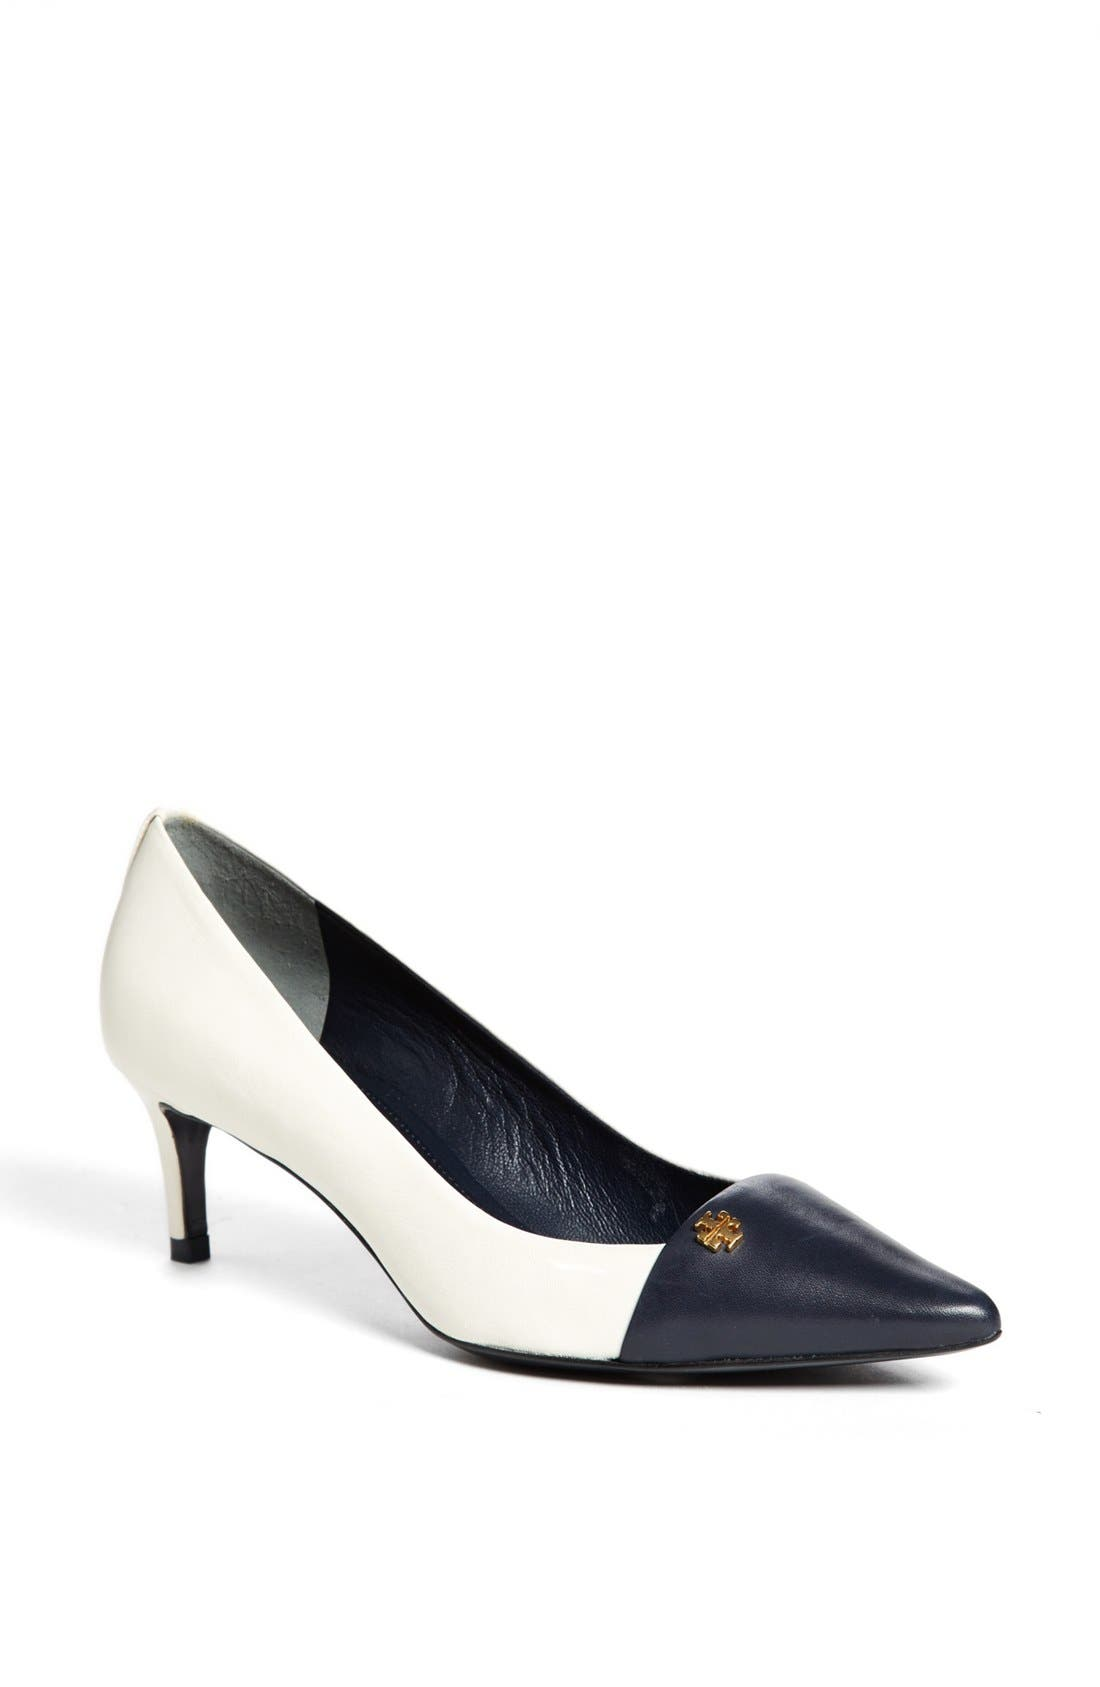 Main Image - Tory Burch 'Crawford' Pump (Online Only)